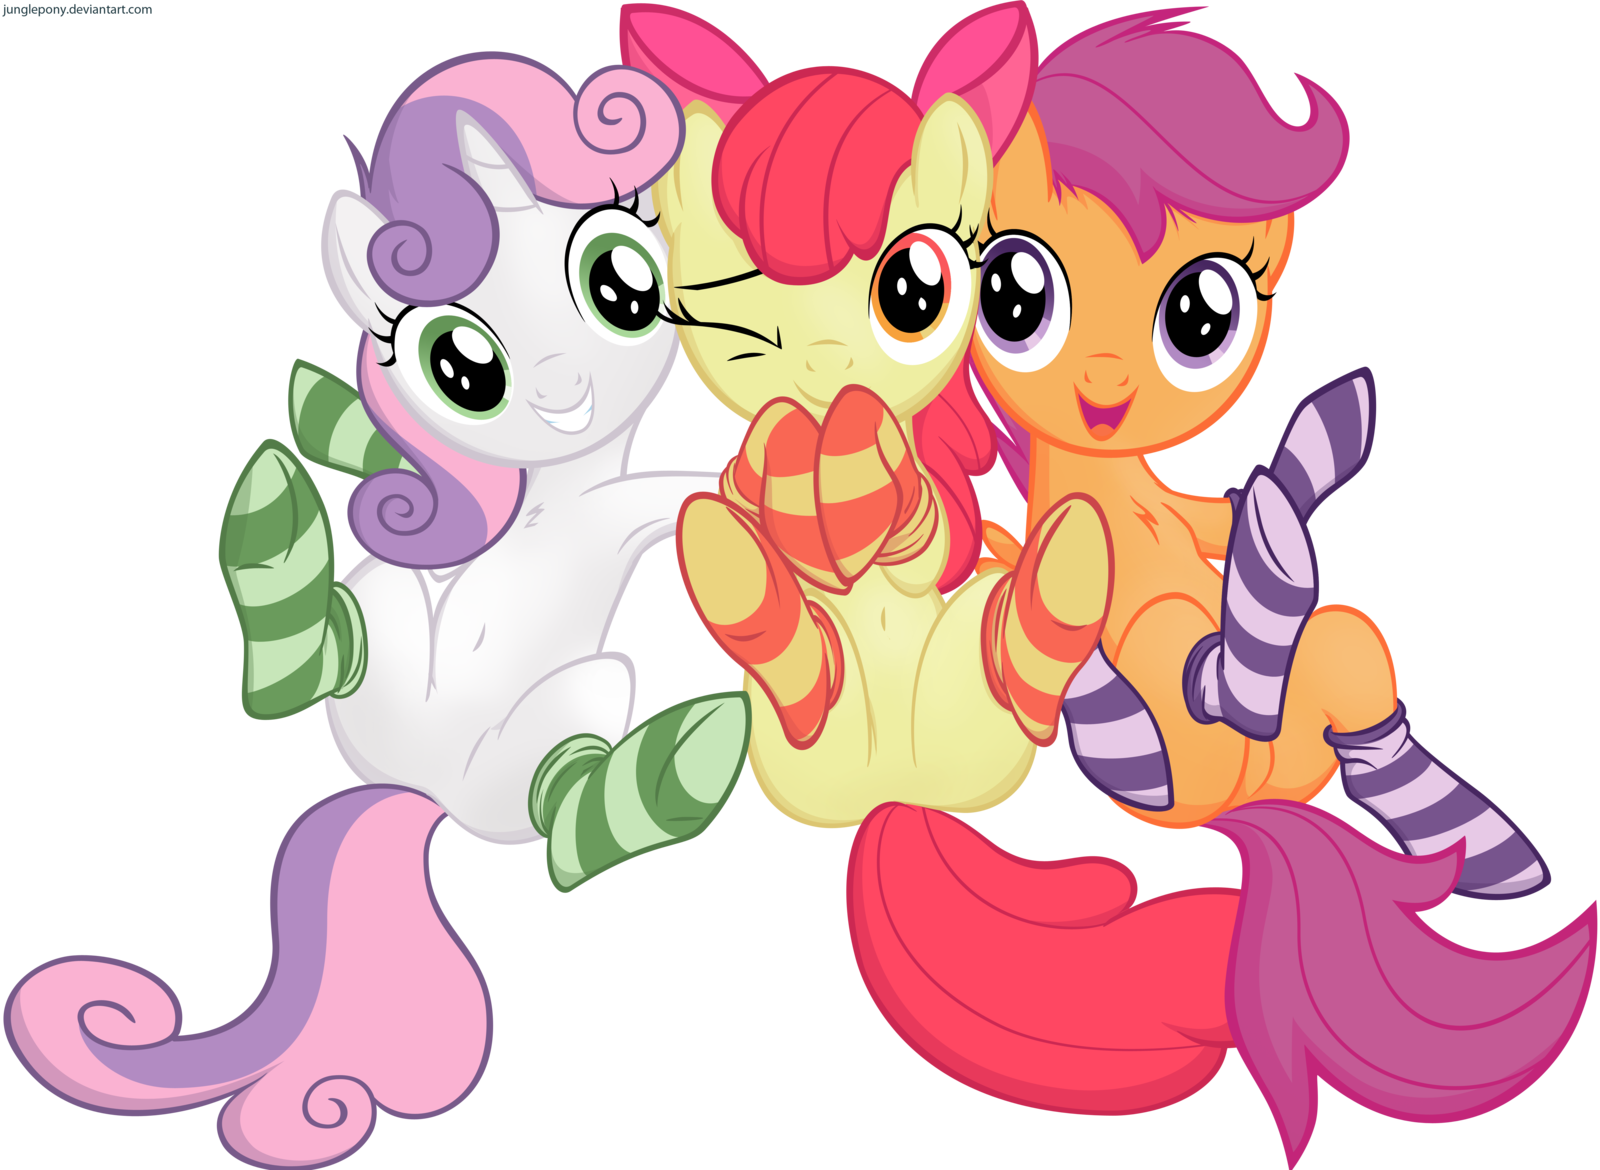 socks for cmc without background by jung